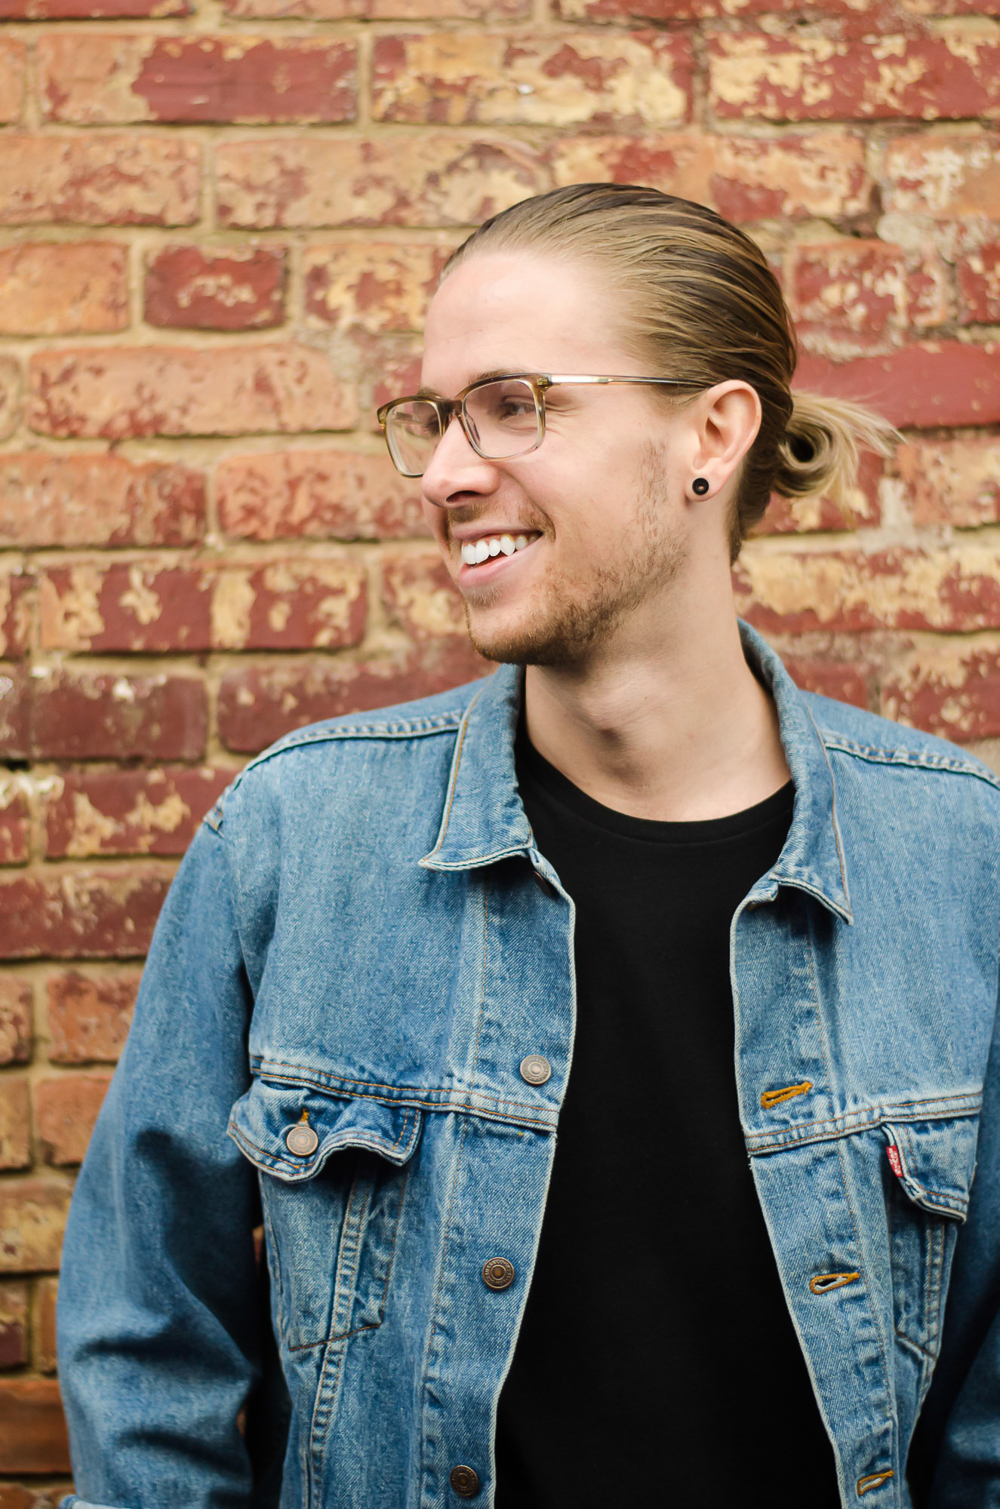 Josh Johnson, The Kentucky Gent and co-founder of Modern Makers Media, is a Louisville, Kentucky based life and style blogger and entrepreneur.